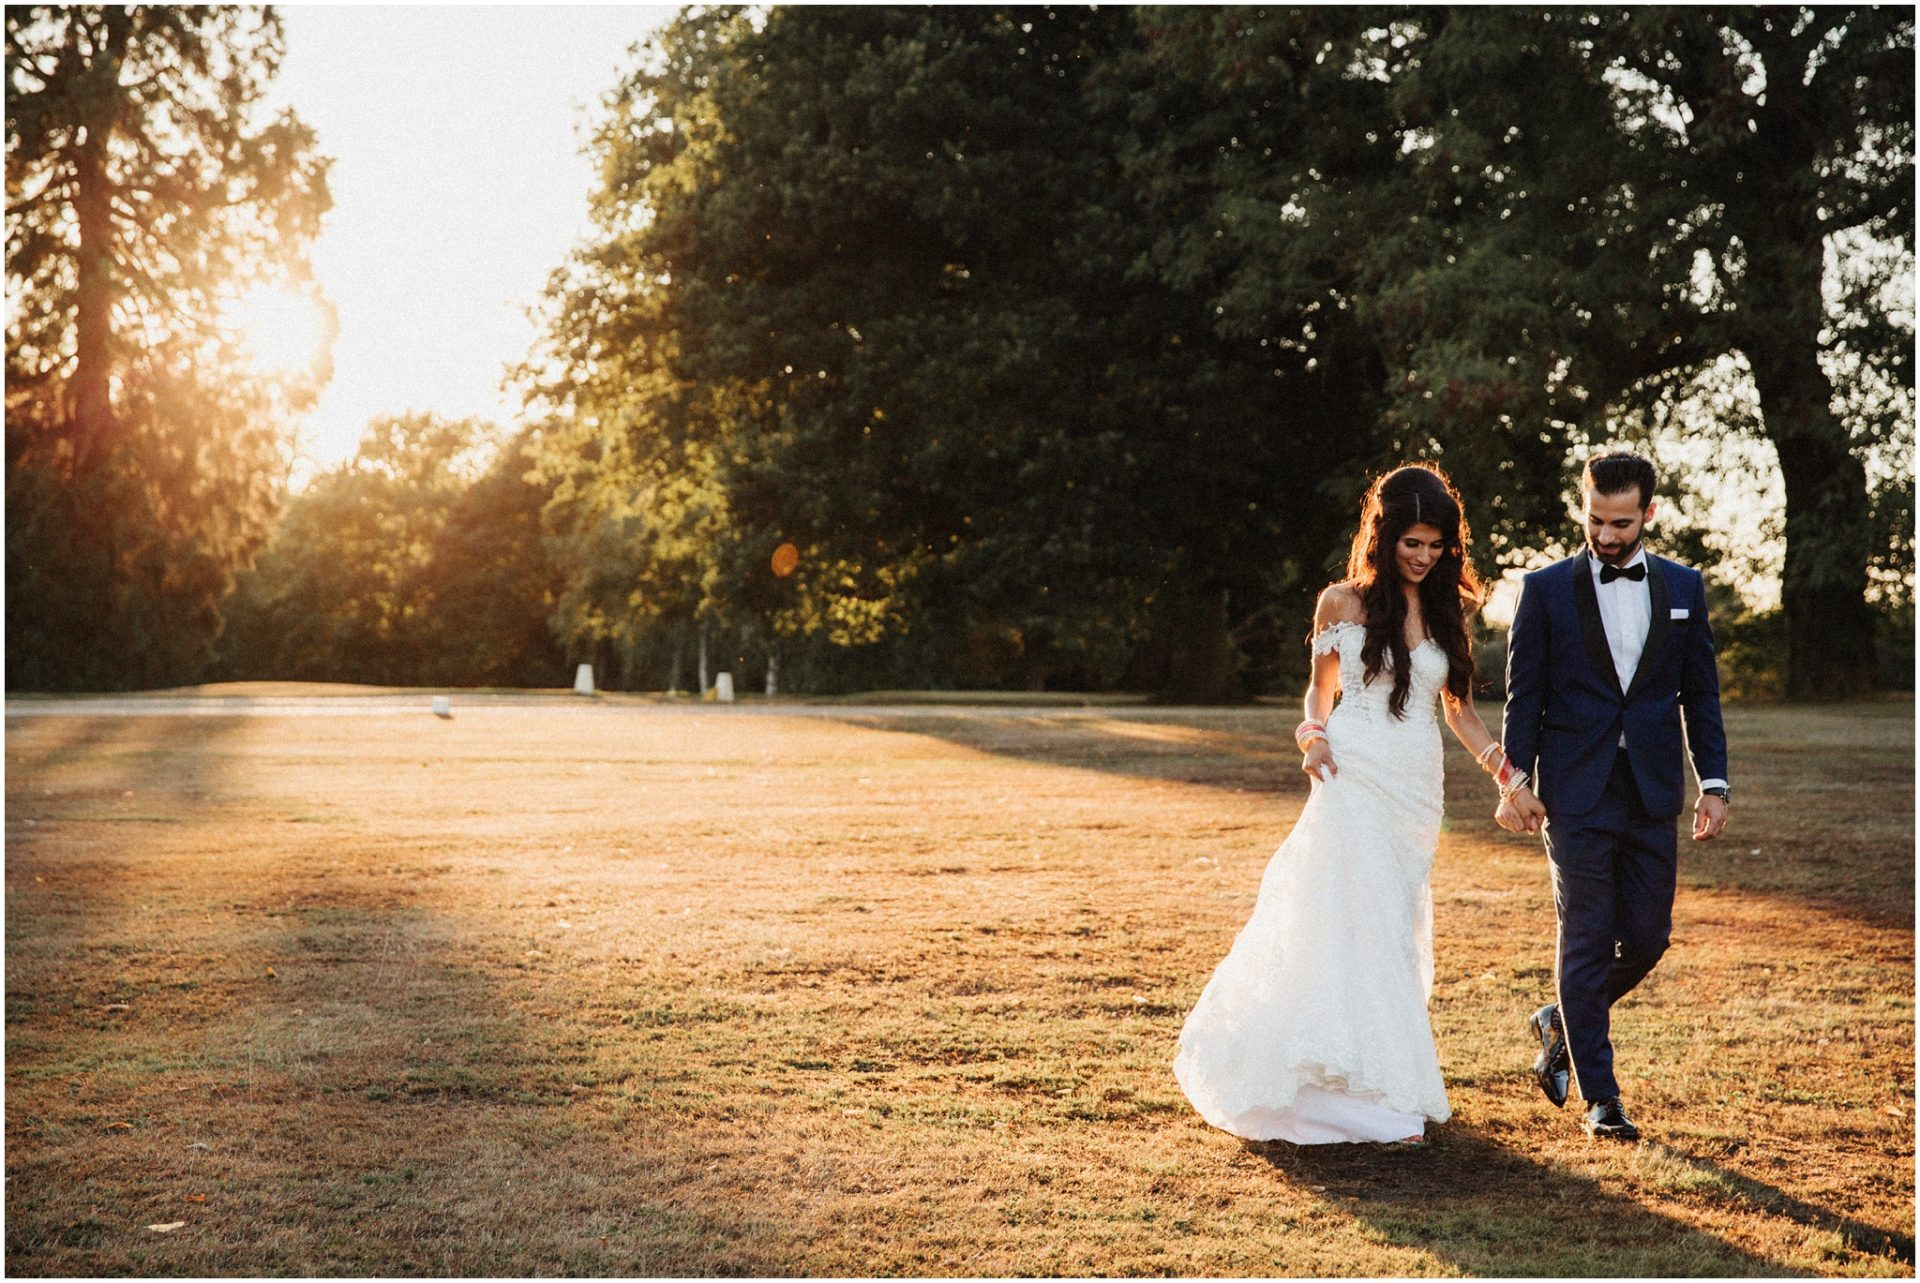 Summer-image-of-a-bride-and-groom-in-the-fields-at-Braxted-Park